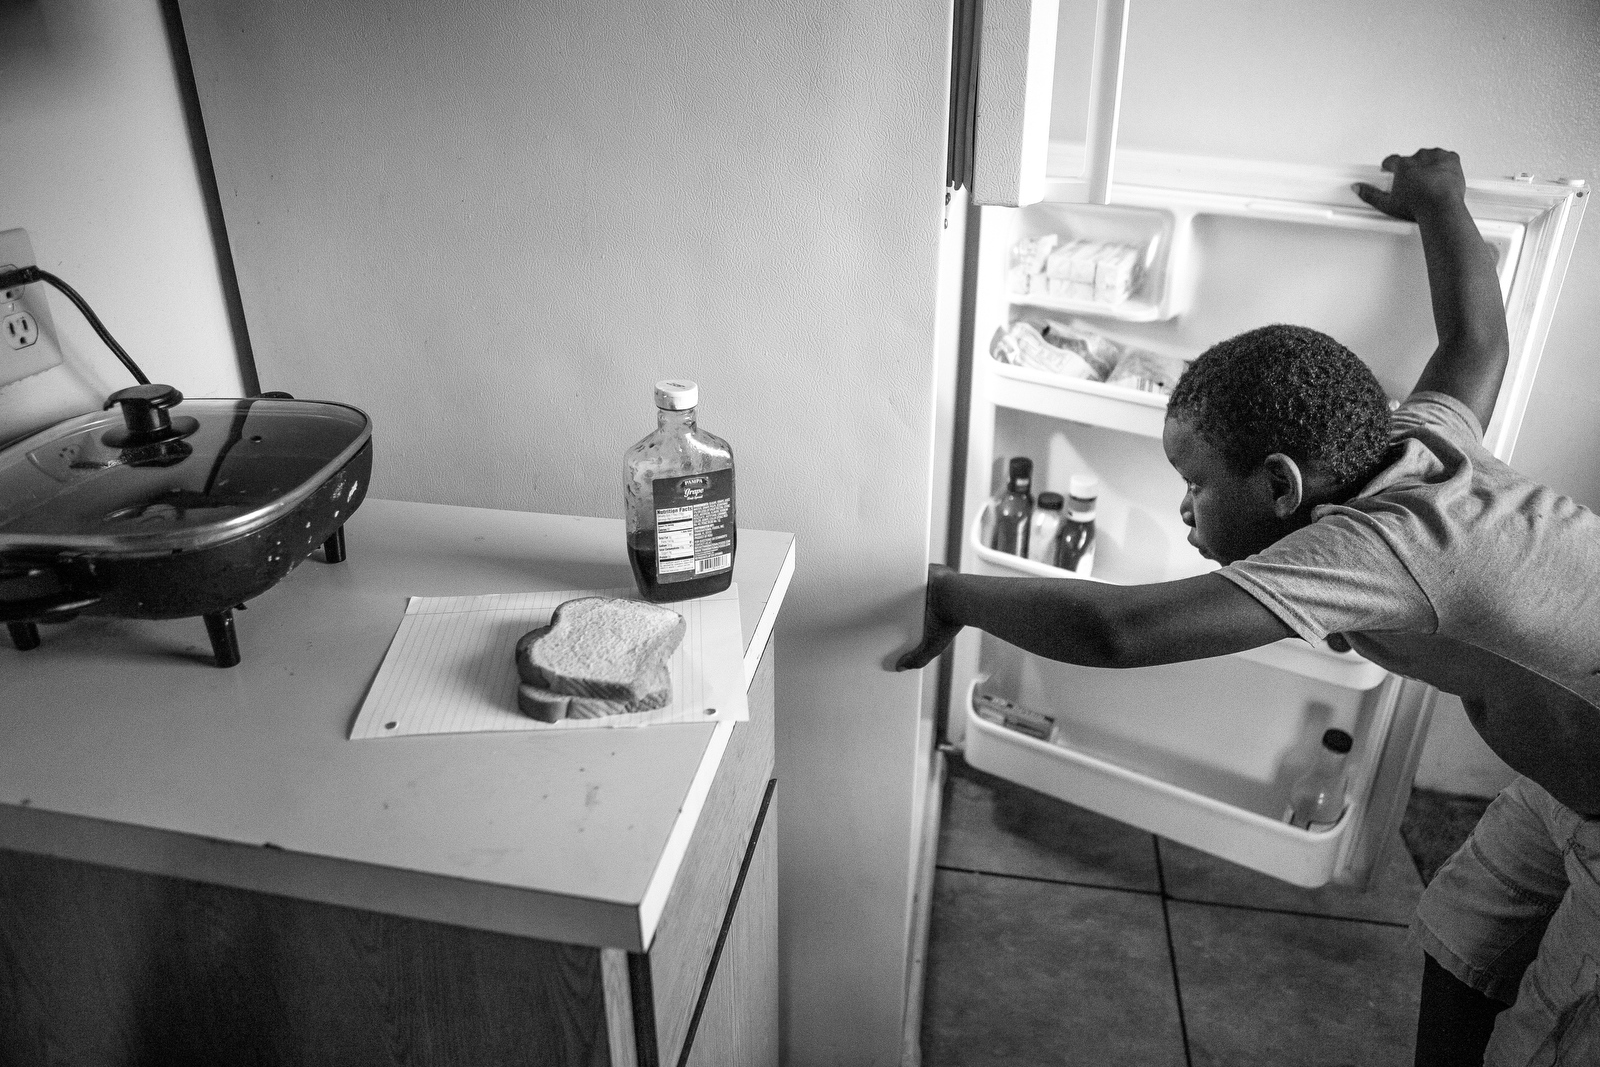 Donald Gibson, 8, checks the refrigerator before making a peanut butter and jelly sandwich at the home where he lives with his grandparents. Their previous home burned down and now Donald's grandmother Imogene only has one electric skillet to cook meal for the family of six. The family subsists primarily on her husband's sole farmworker's salary which means food can sometimes be scarce.